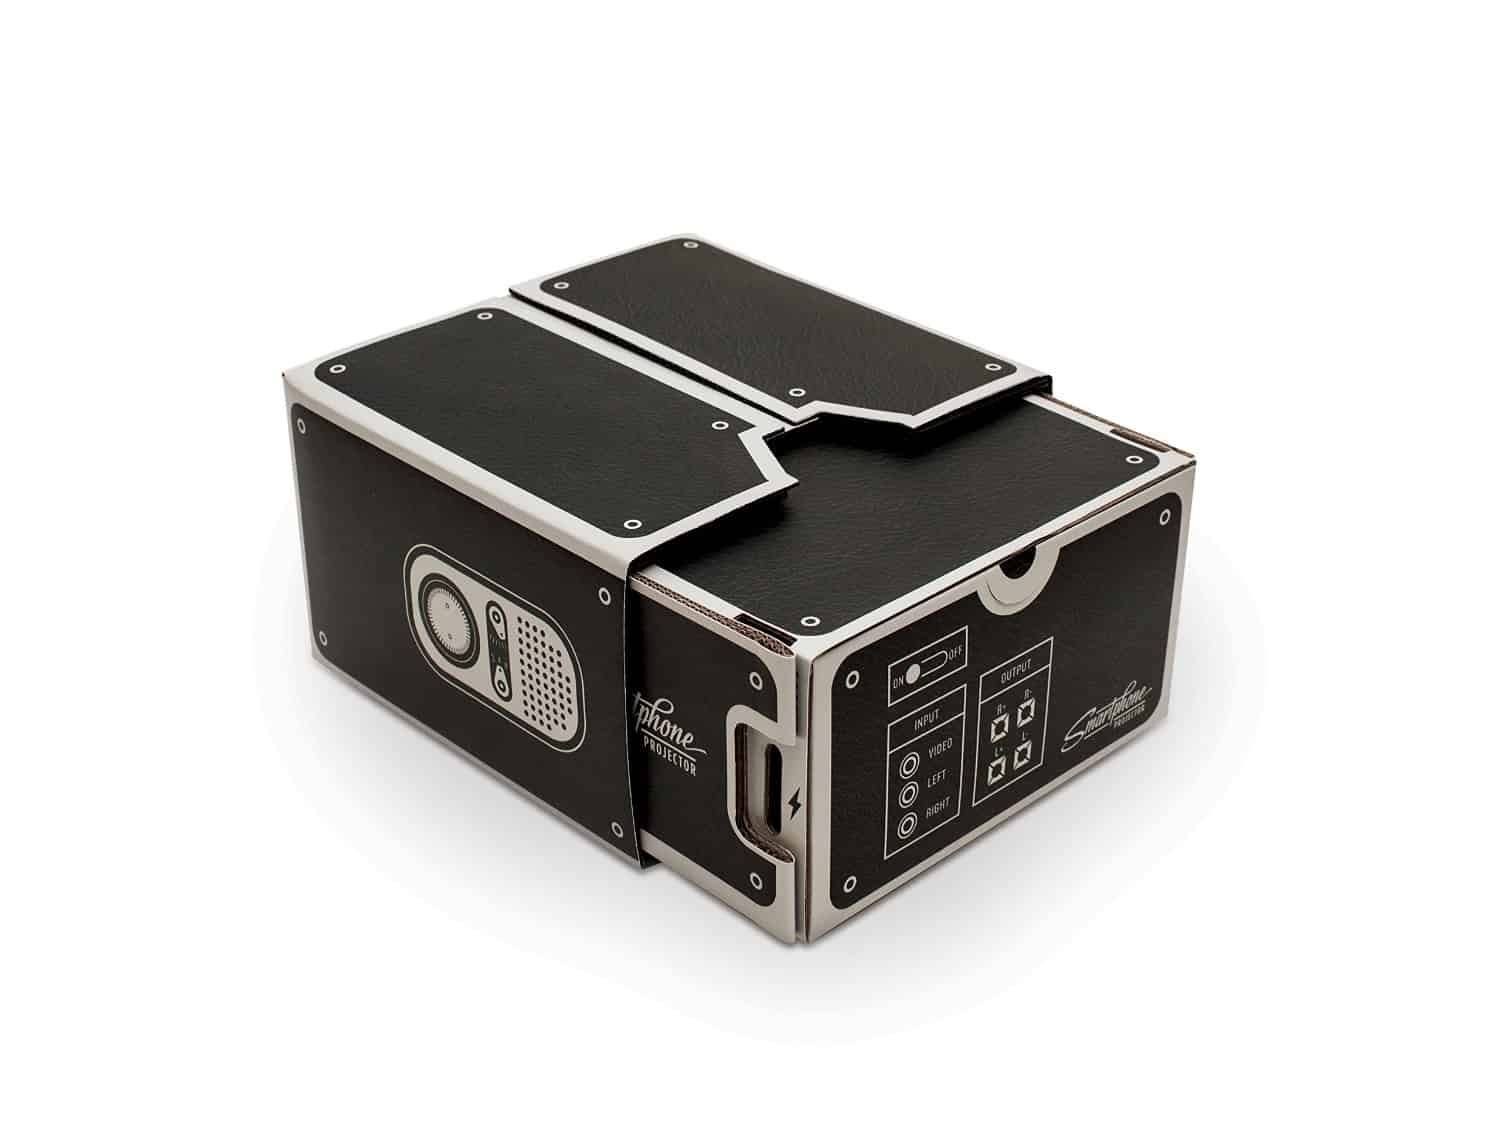 Luckies Smartphone Projector Movable Parts for Image Focus